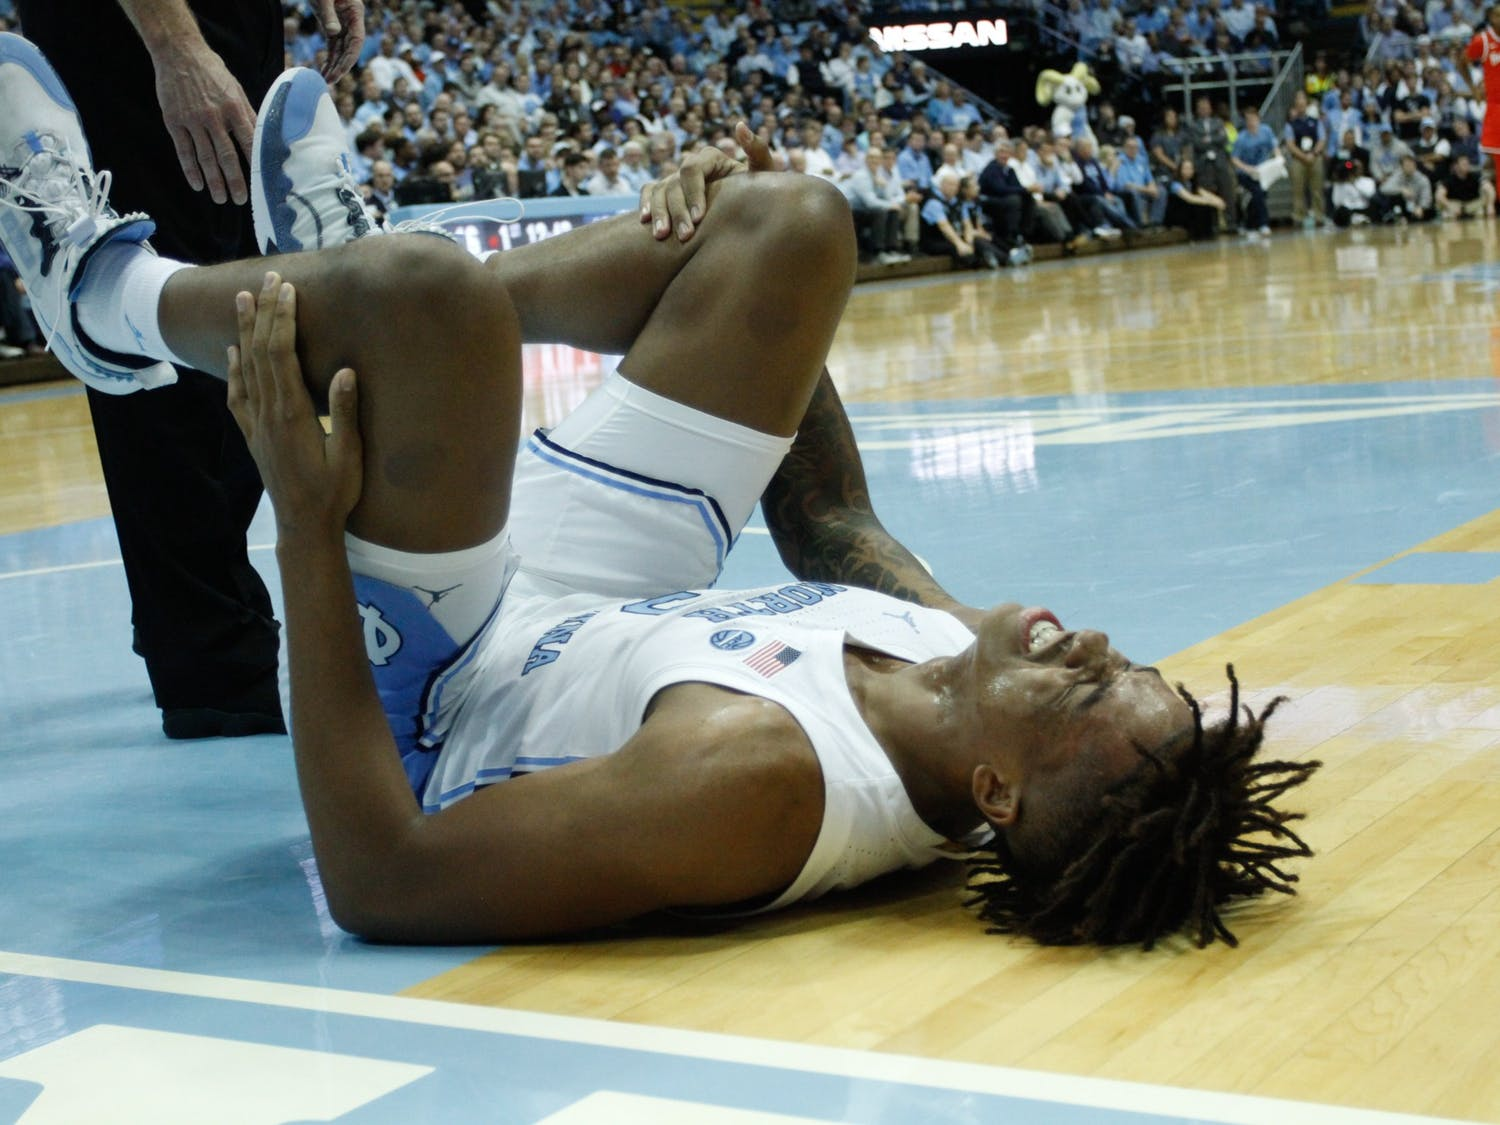 Freshman forward Armando Bacot (5) lies injured on the ground.